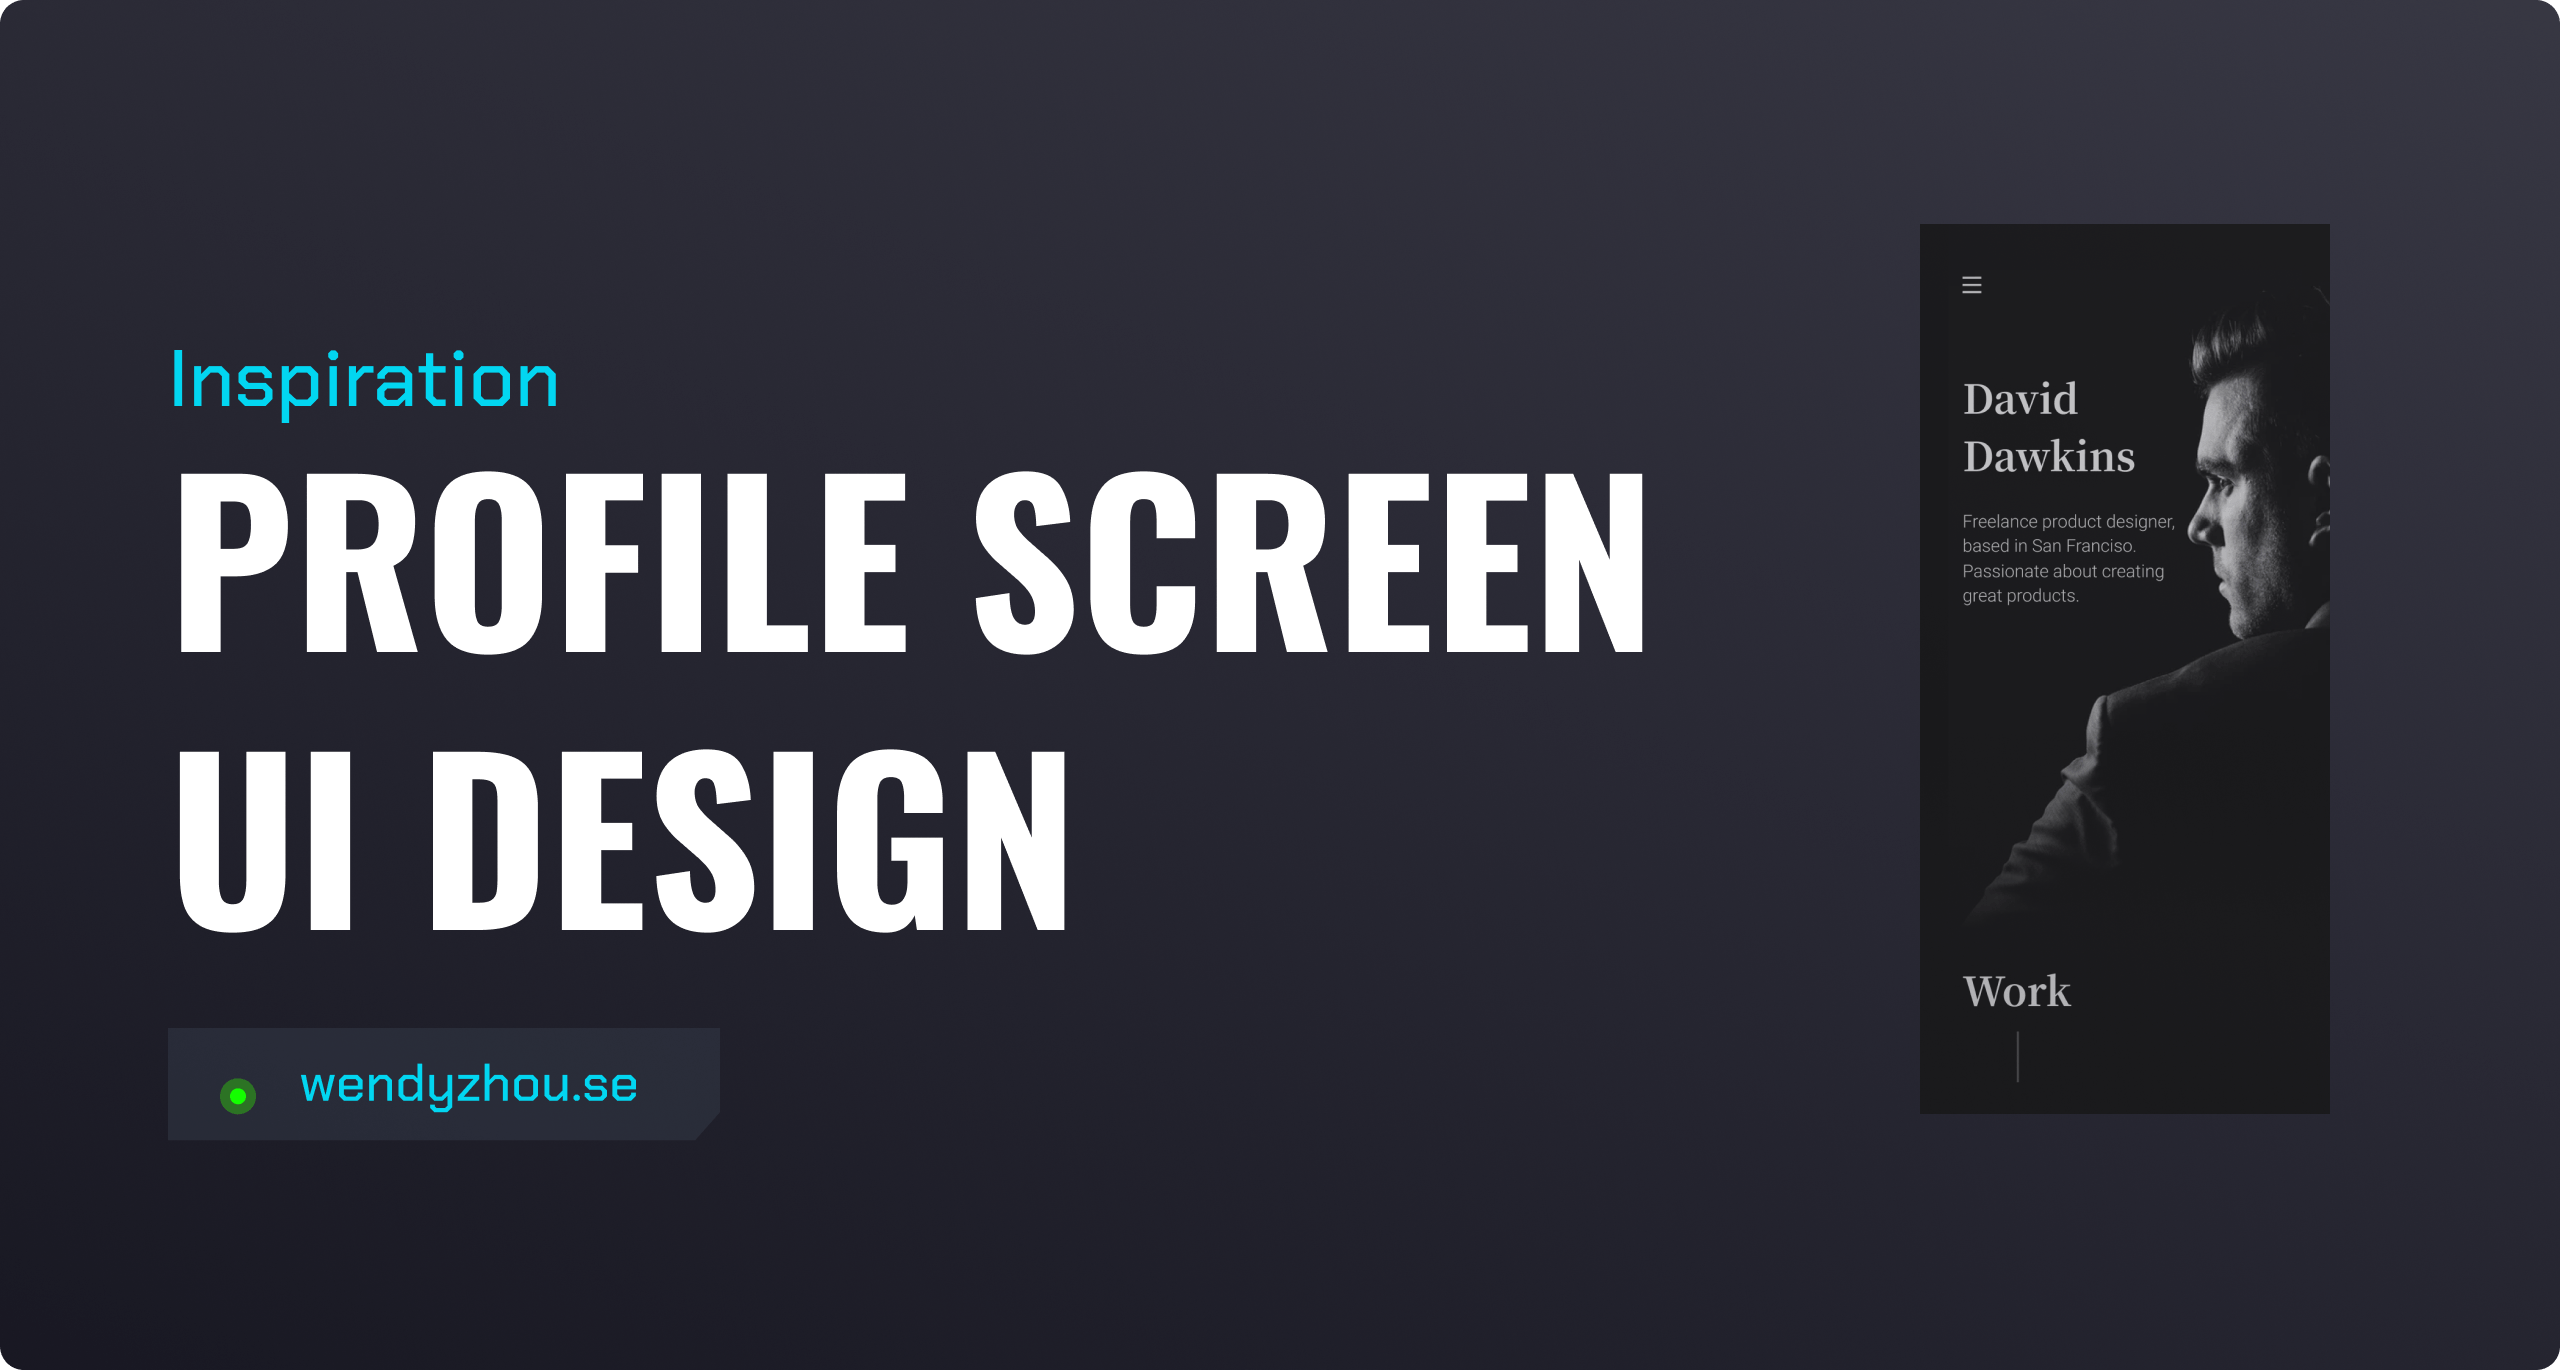 Profile Screen UI Design Inspiration